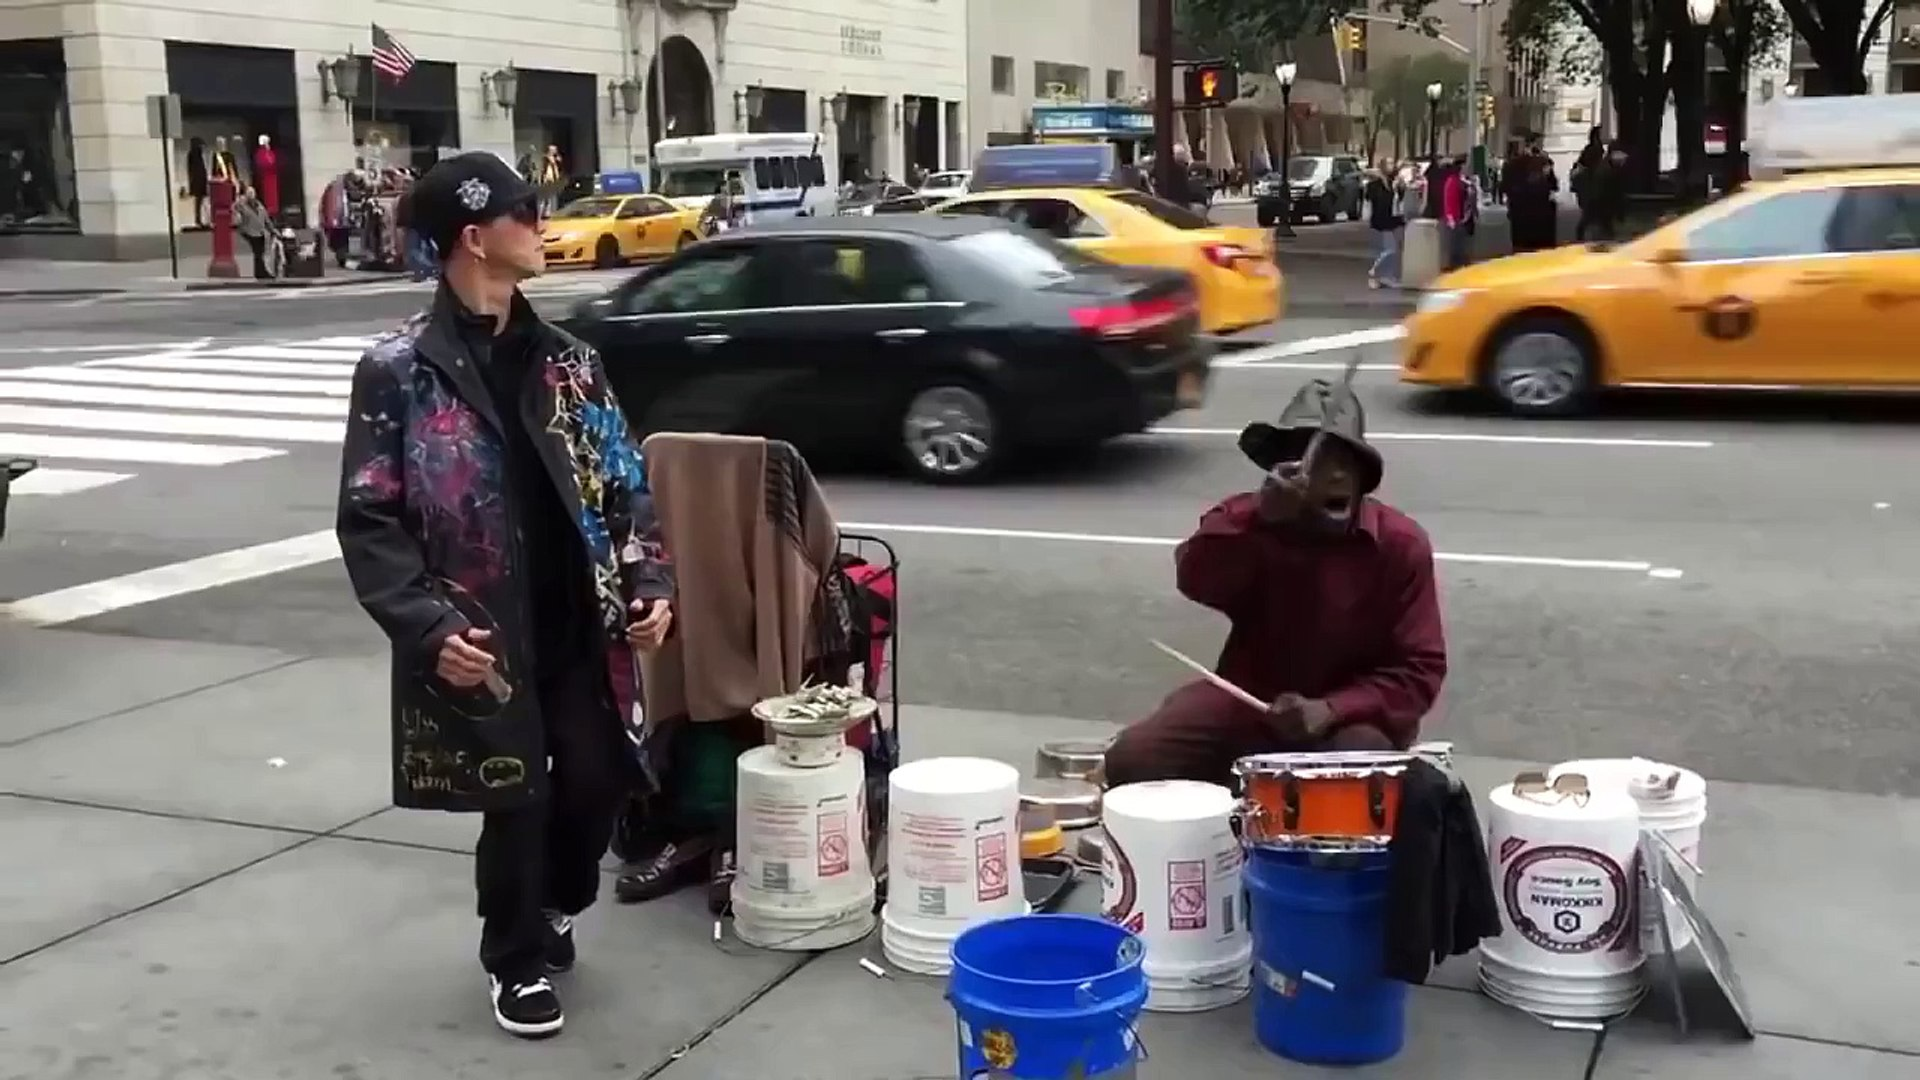 Crazy Dancing to a Street Musician in NYC